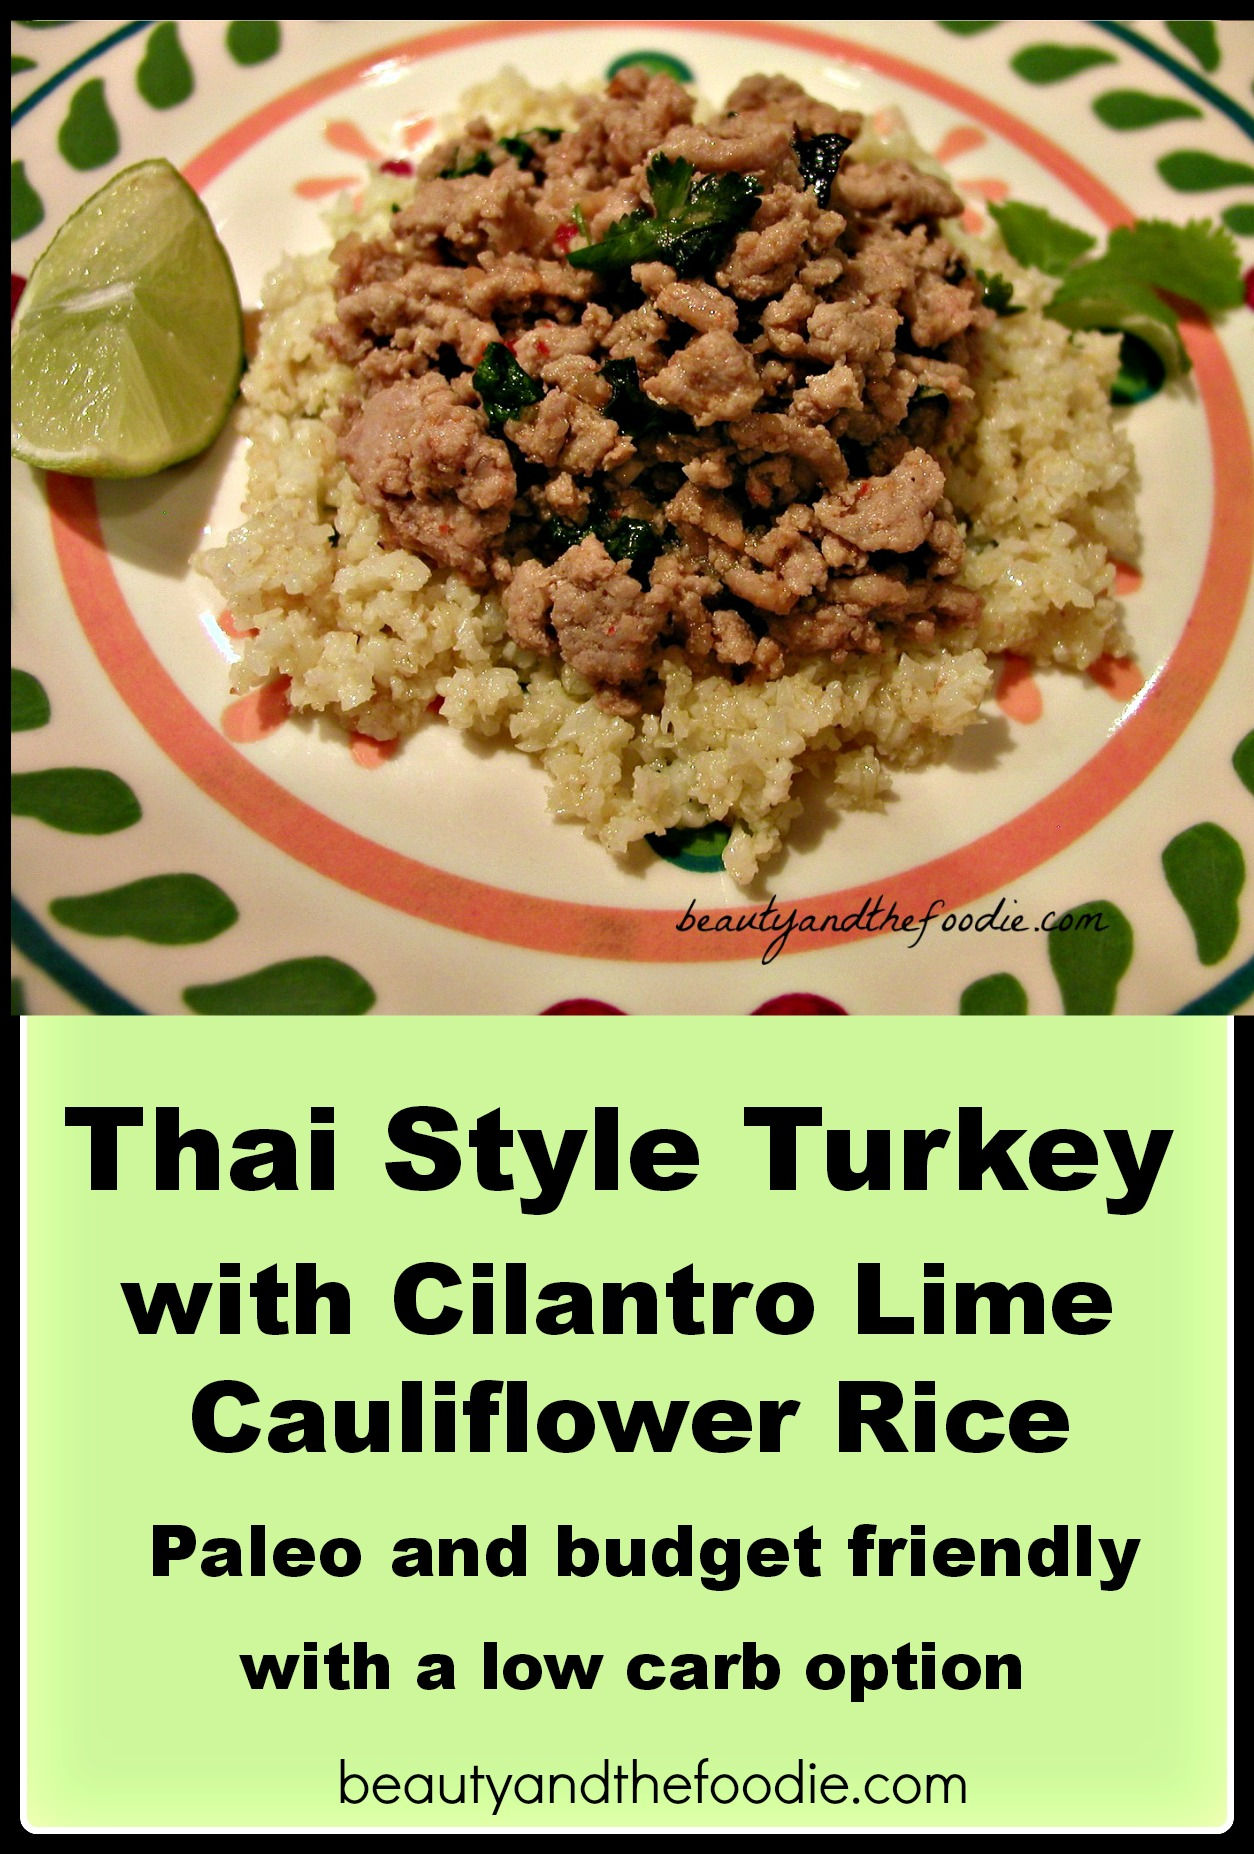 Thai Style Turkey With Cilantro Lime Cauliflower Rice Paleo And Low Carb Beautyandthefoodie RECIPE AND DIRECTIONS BELOW